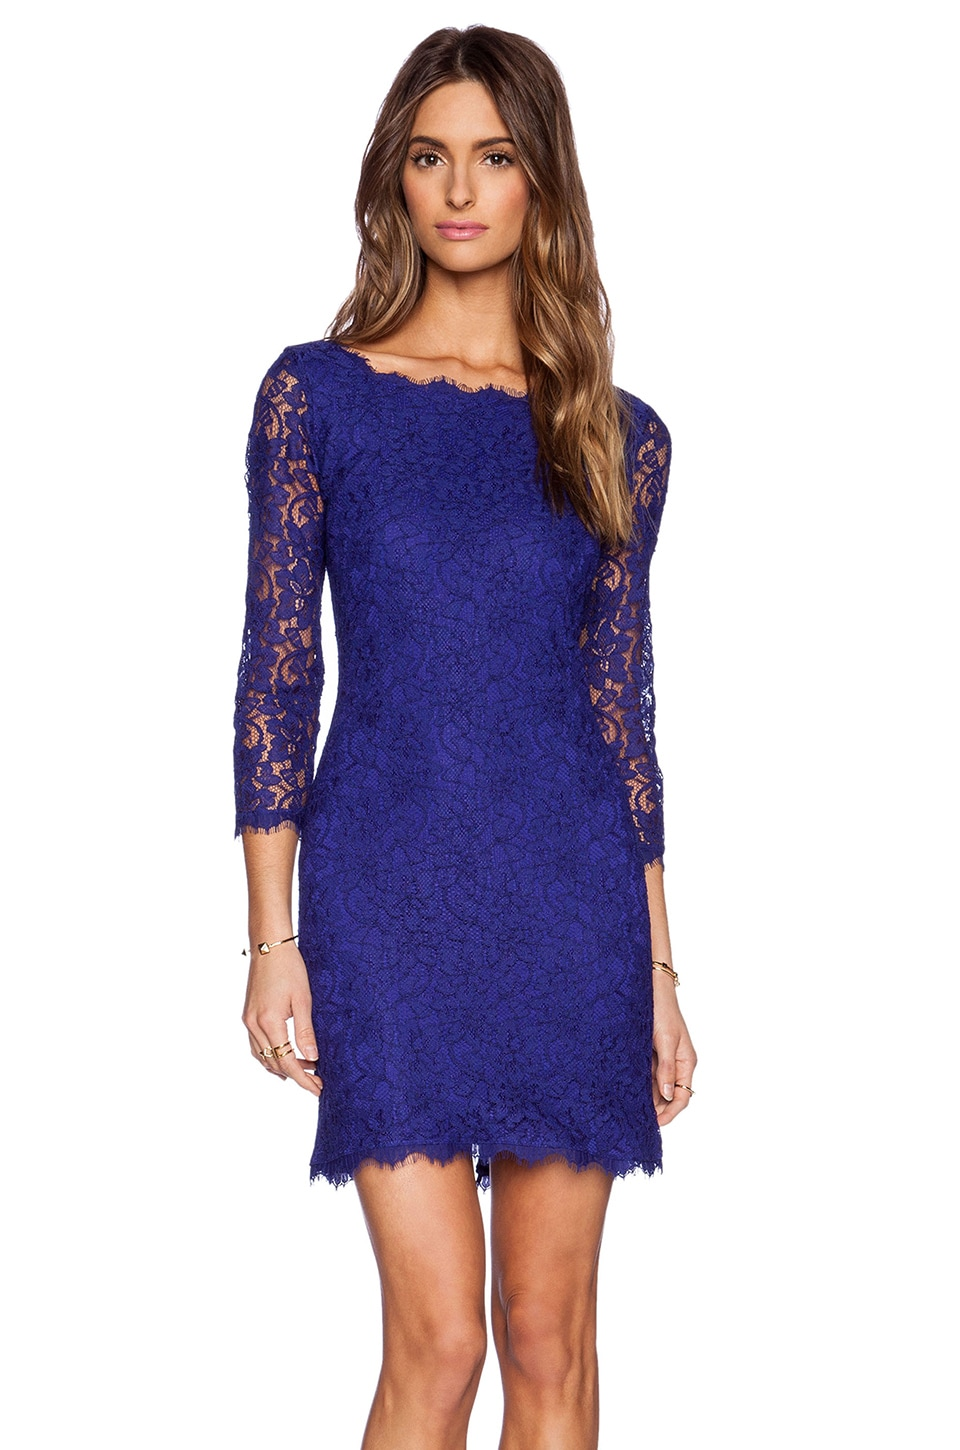 Dvf Zarita Dress Sale Zarita Dress in Chrome Purple